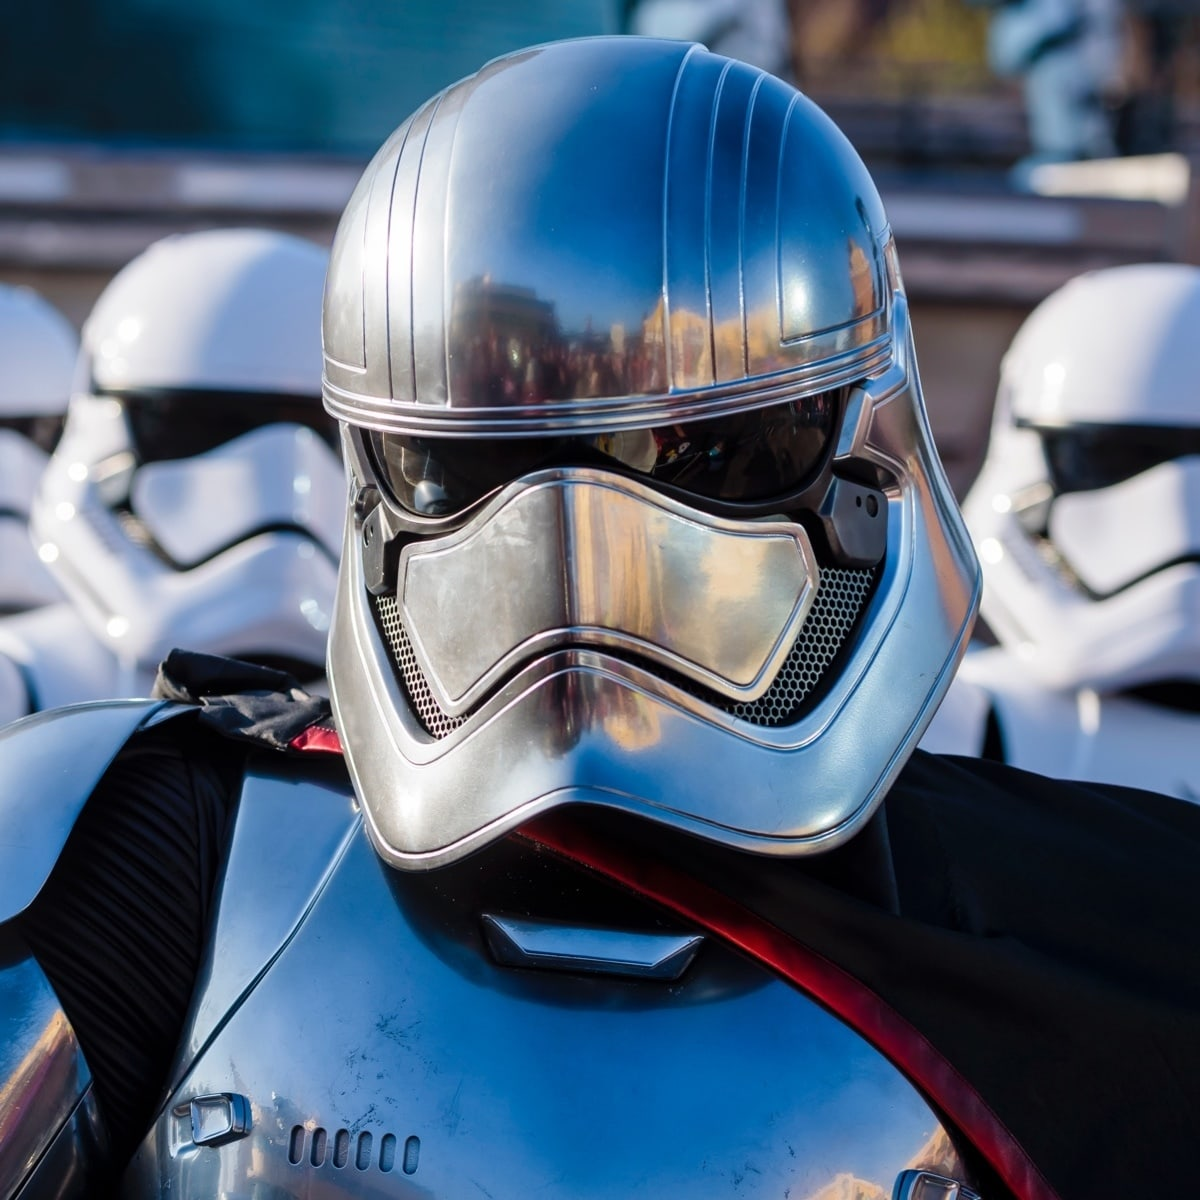 Captain Phasma at Disneyland Paris